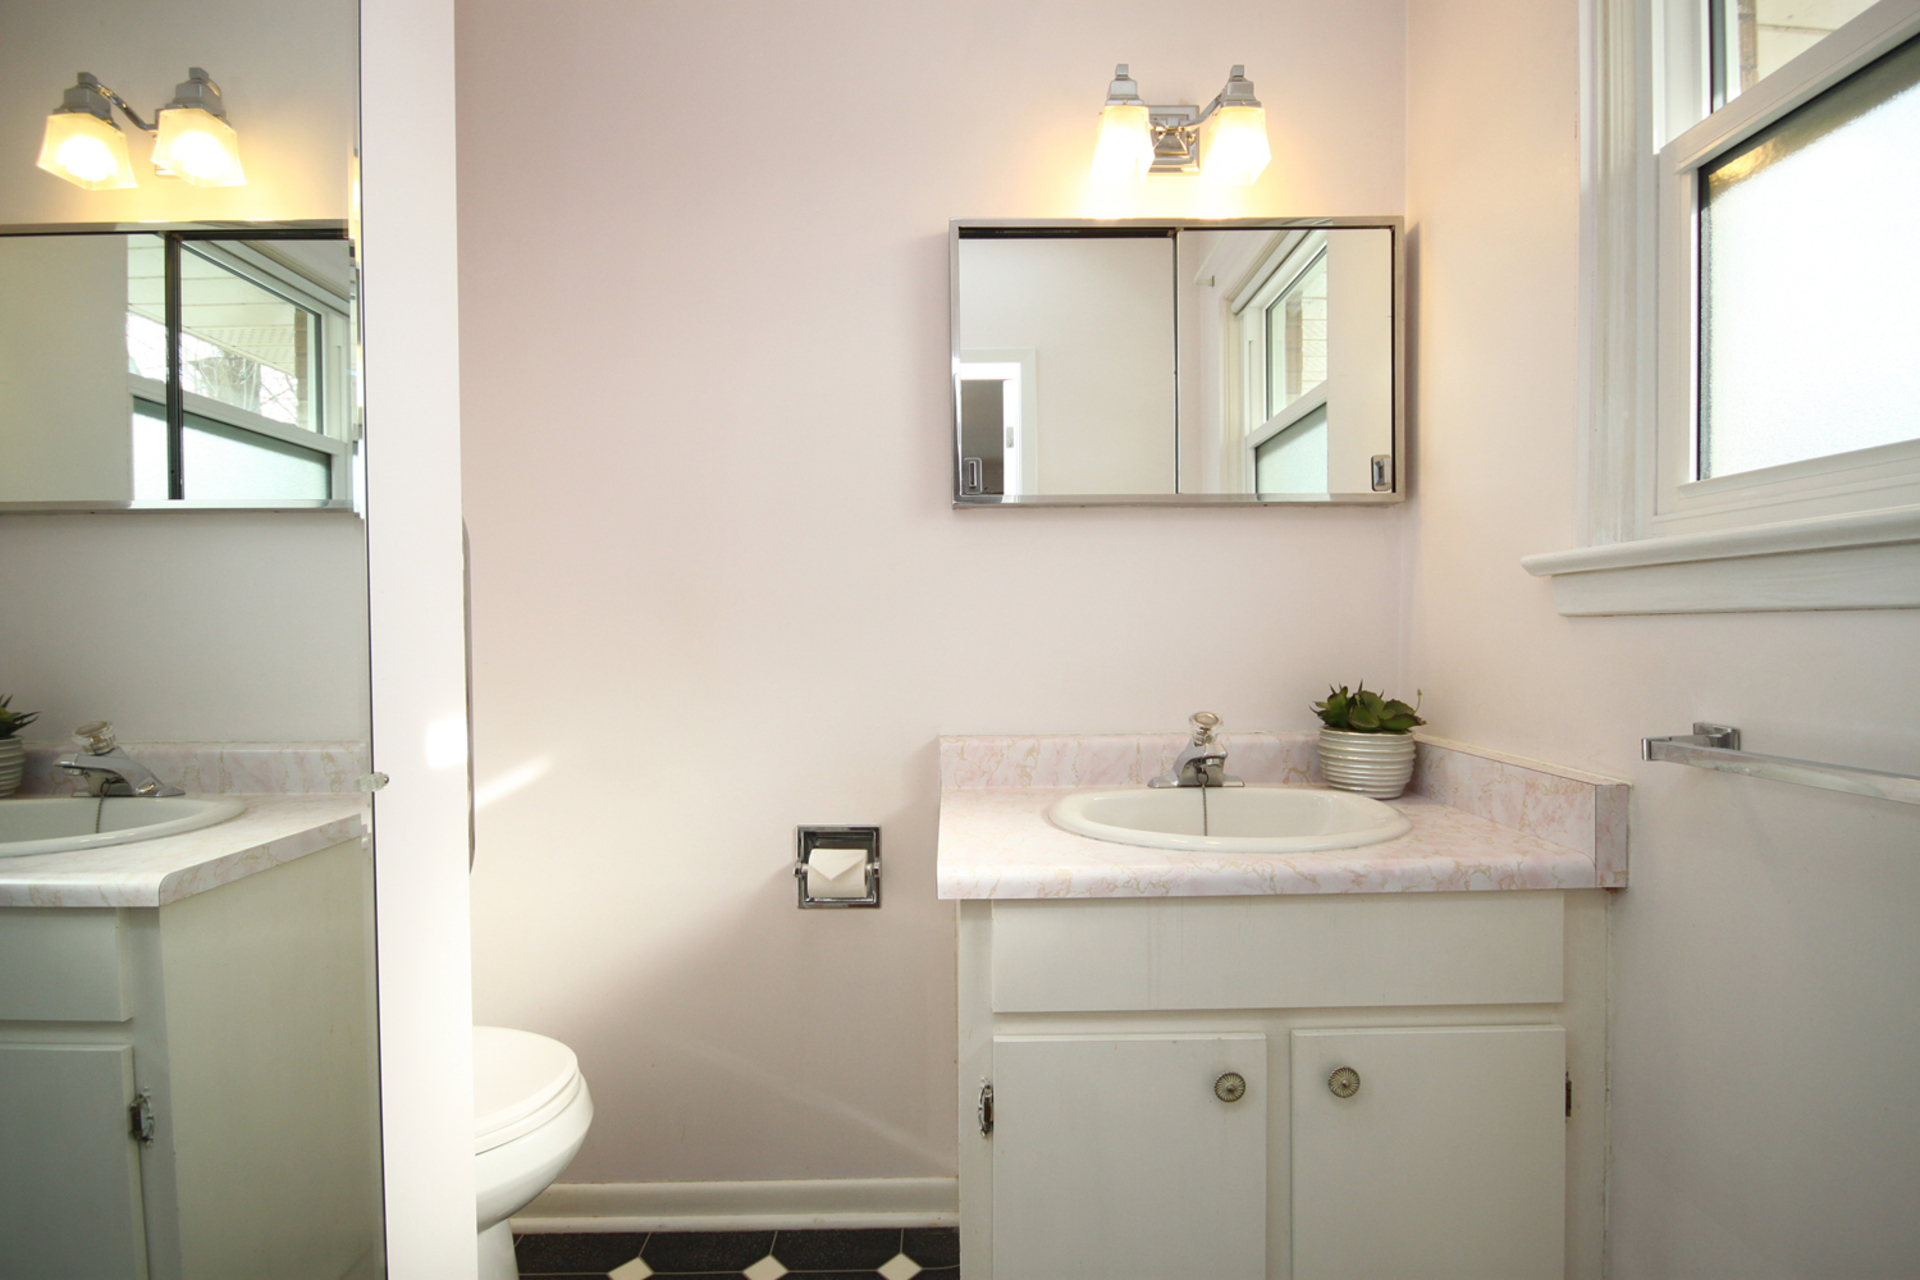 2 Piece Ensuite Bathroom at 6 Redwillow Drive, Parkwoods-Donalda, Toronto